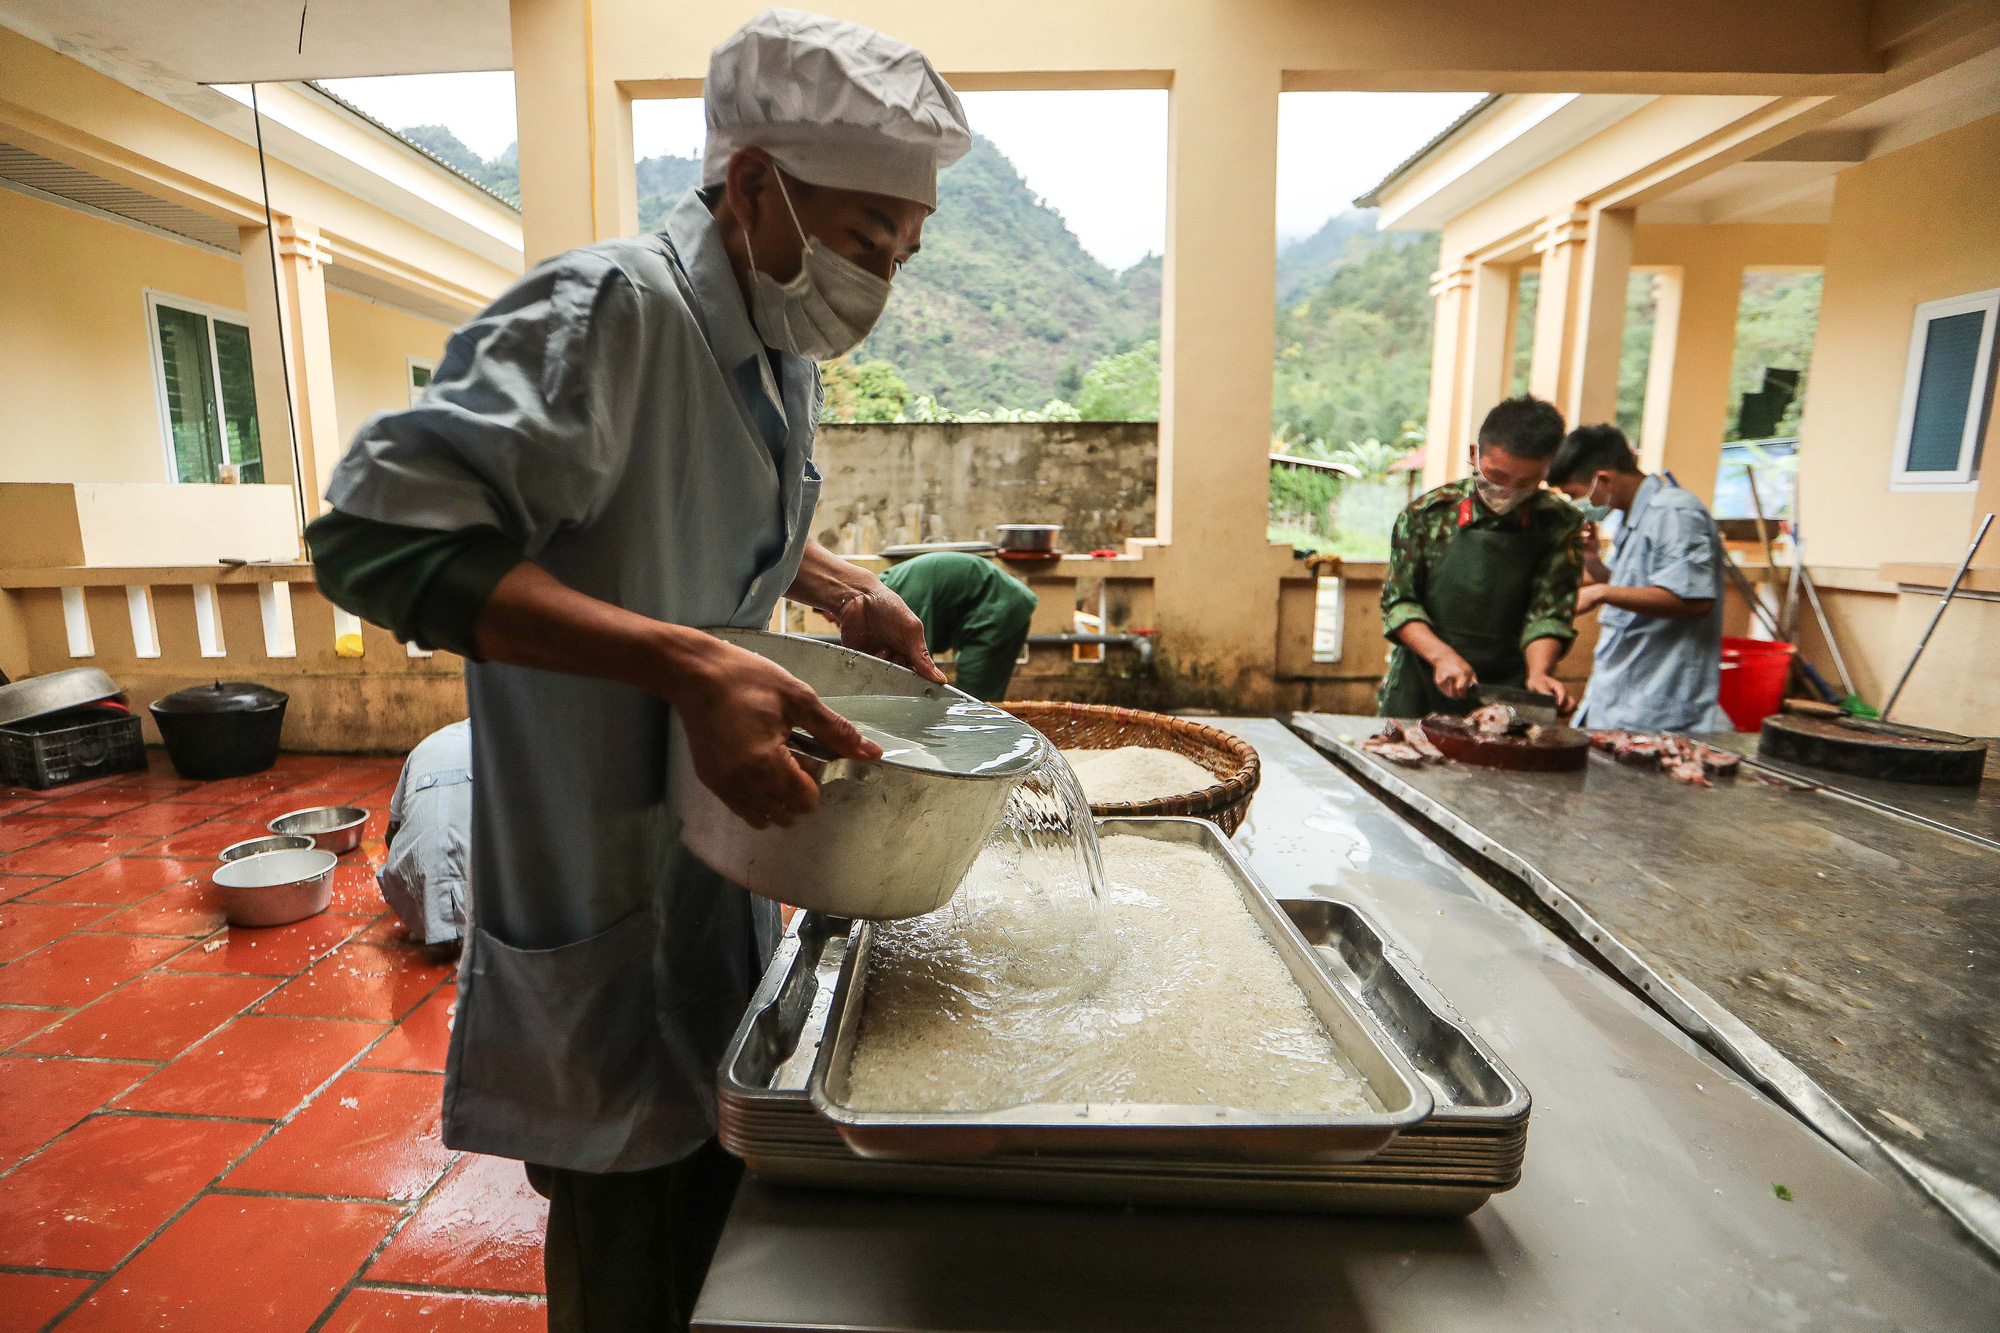 Military staff prepare dinner for quarantined people at Lao Cai Military School in the namesake province in northern Vietnam. Photo: Nguyen Khanh / Tuoi Tre